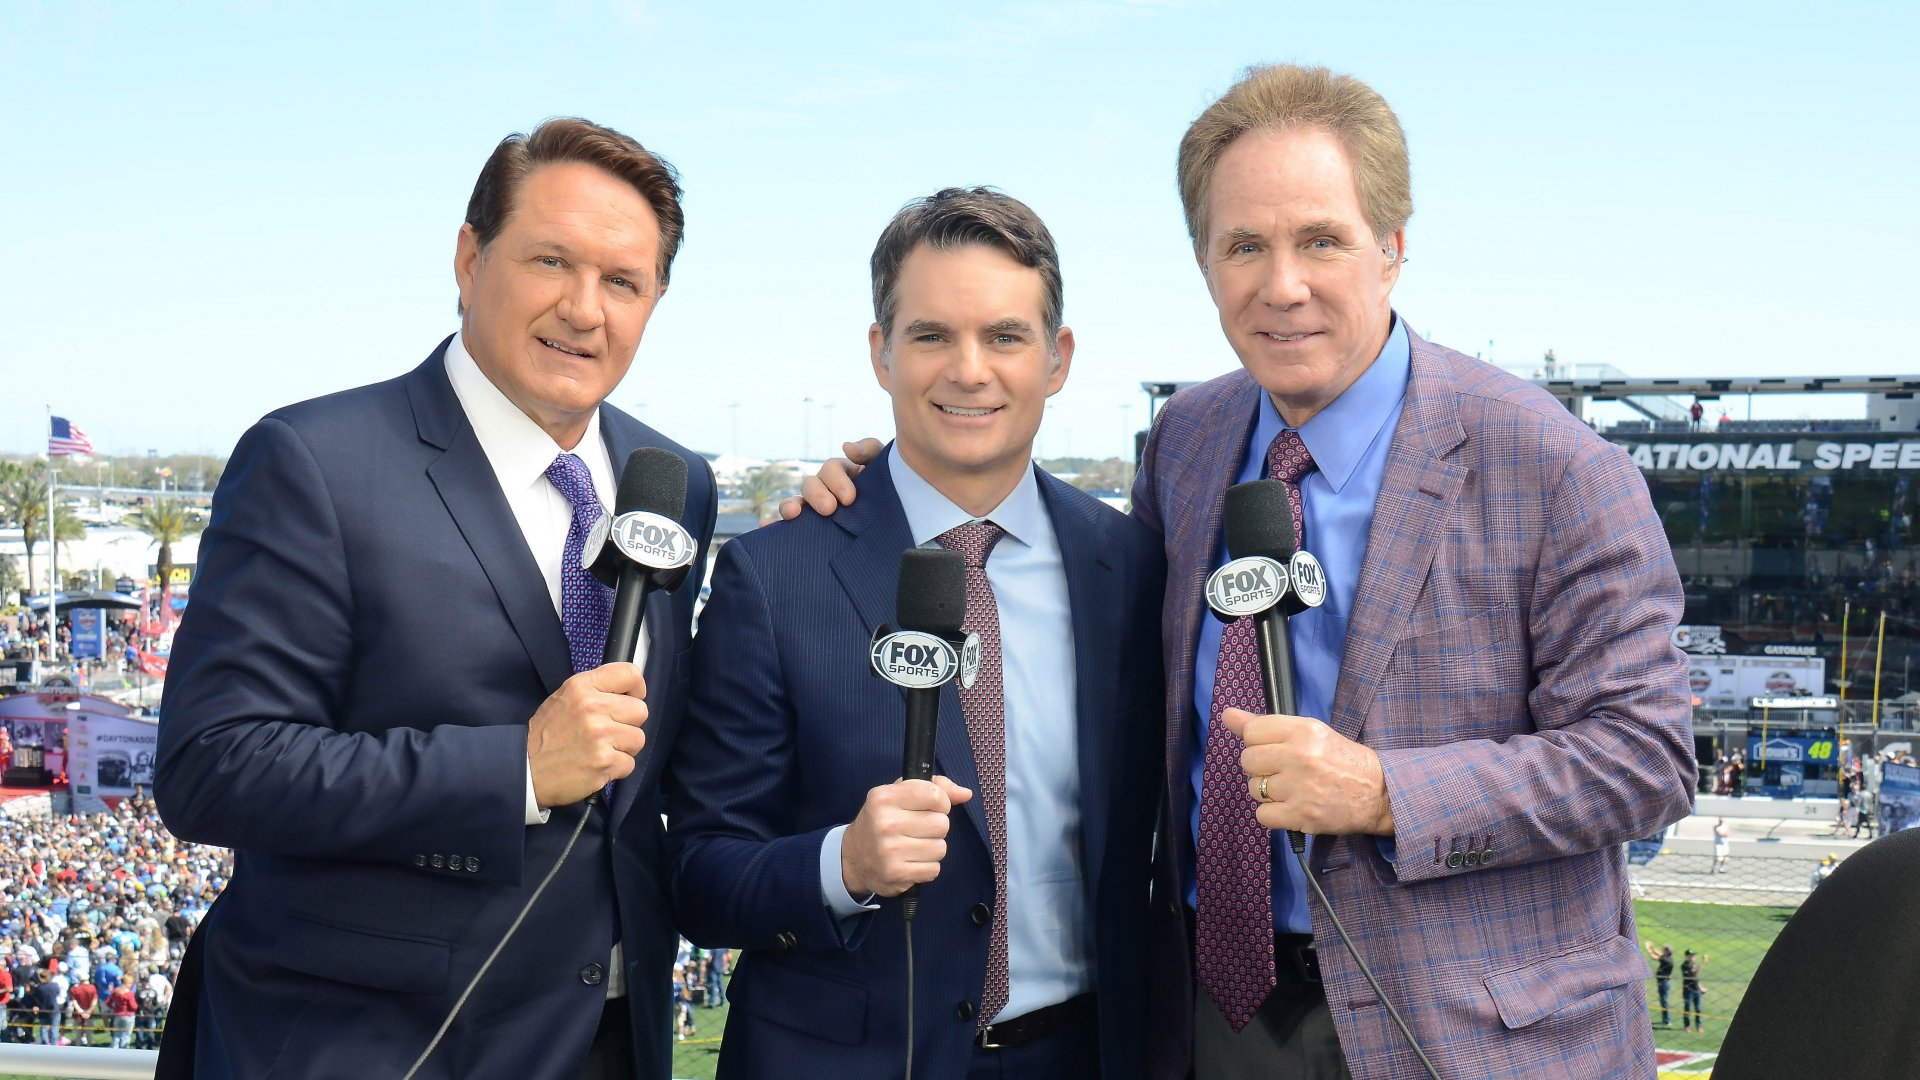 Left to right: Chris Meyers, Jeff Gordon, Darrell Waltrip.